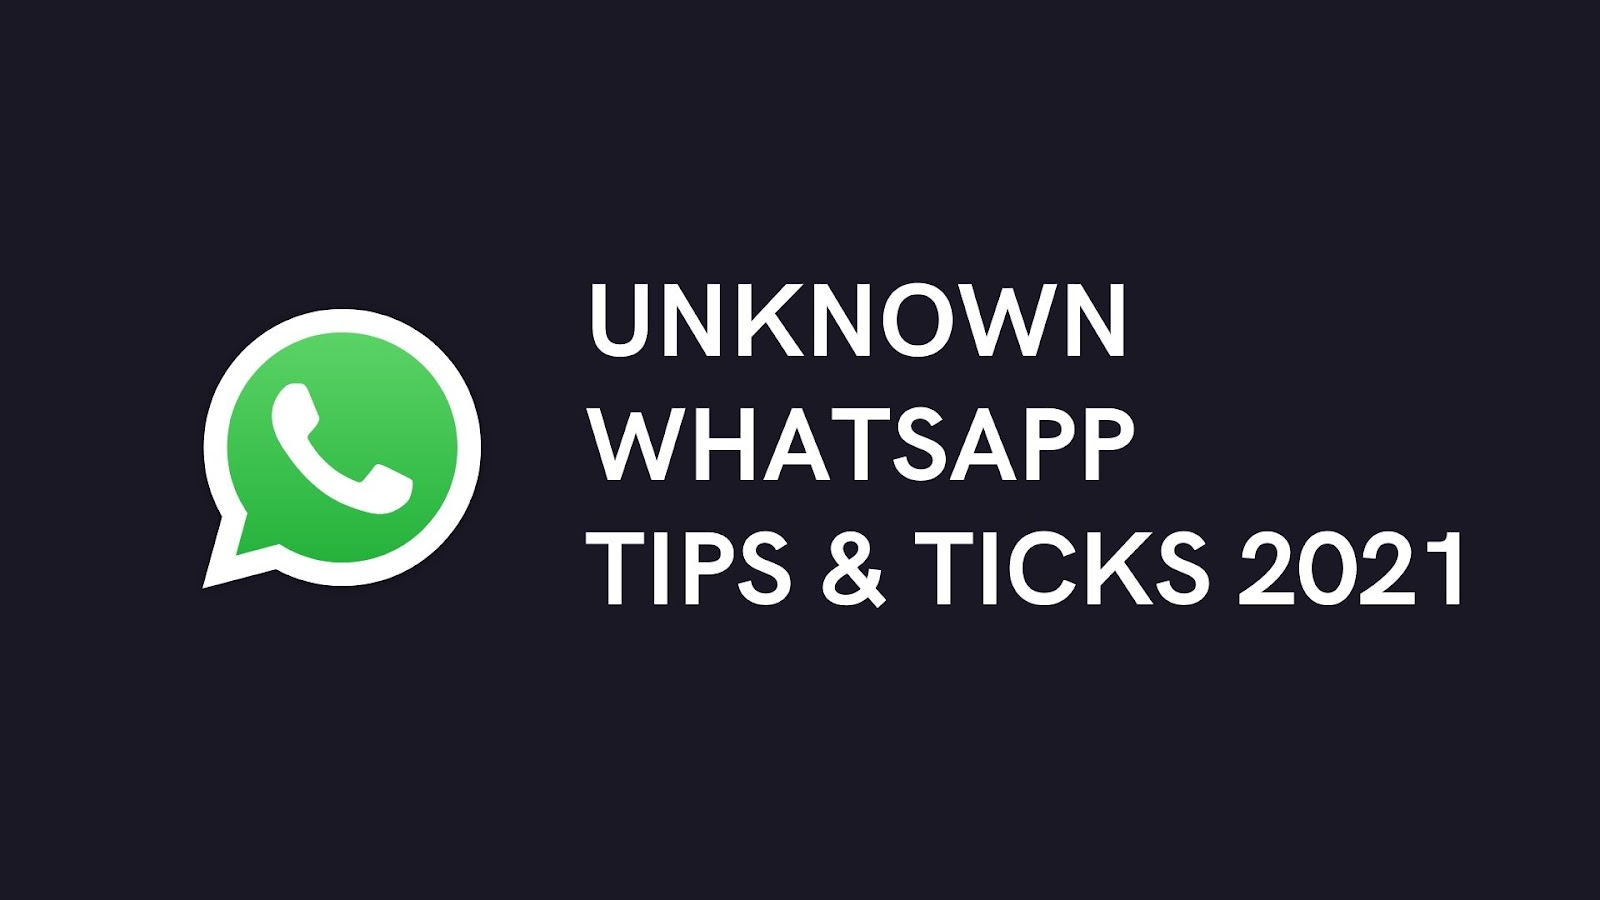 WhatsApp Tips and Tricks 2021